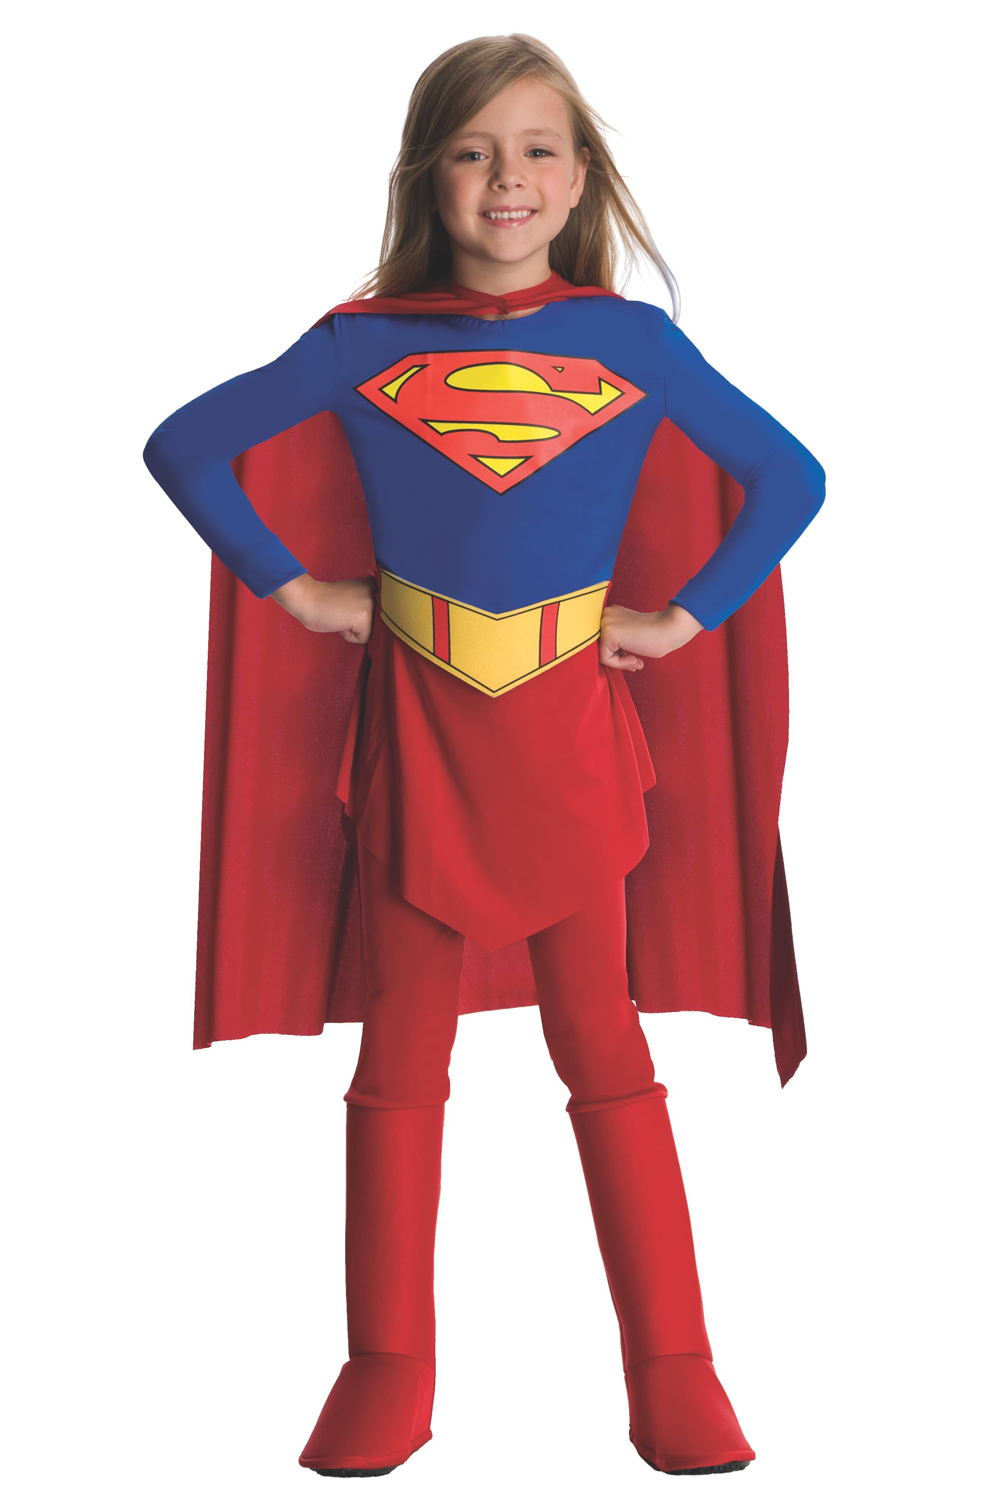 Gespenst Kostüm Supergirl Toddler/child Costume - Purecostumes.com